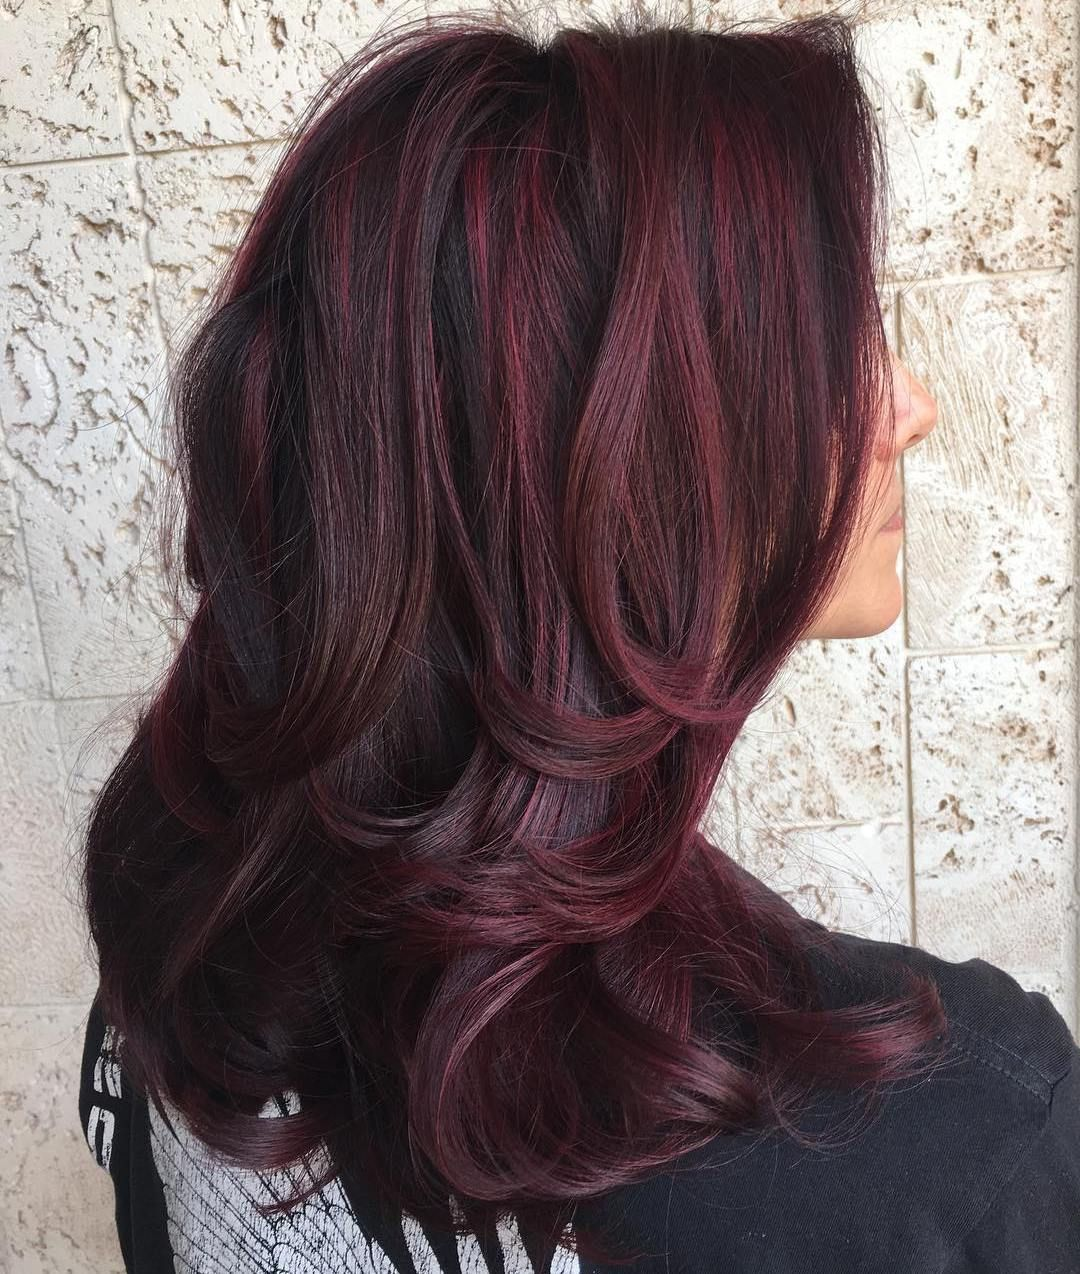 Pin By Jooana On Hair Color Ideas Pinterest Hair Burgundy Hair